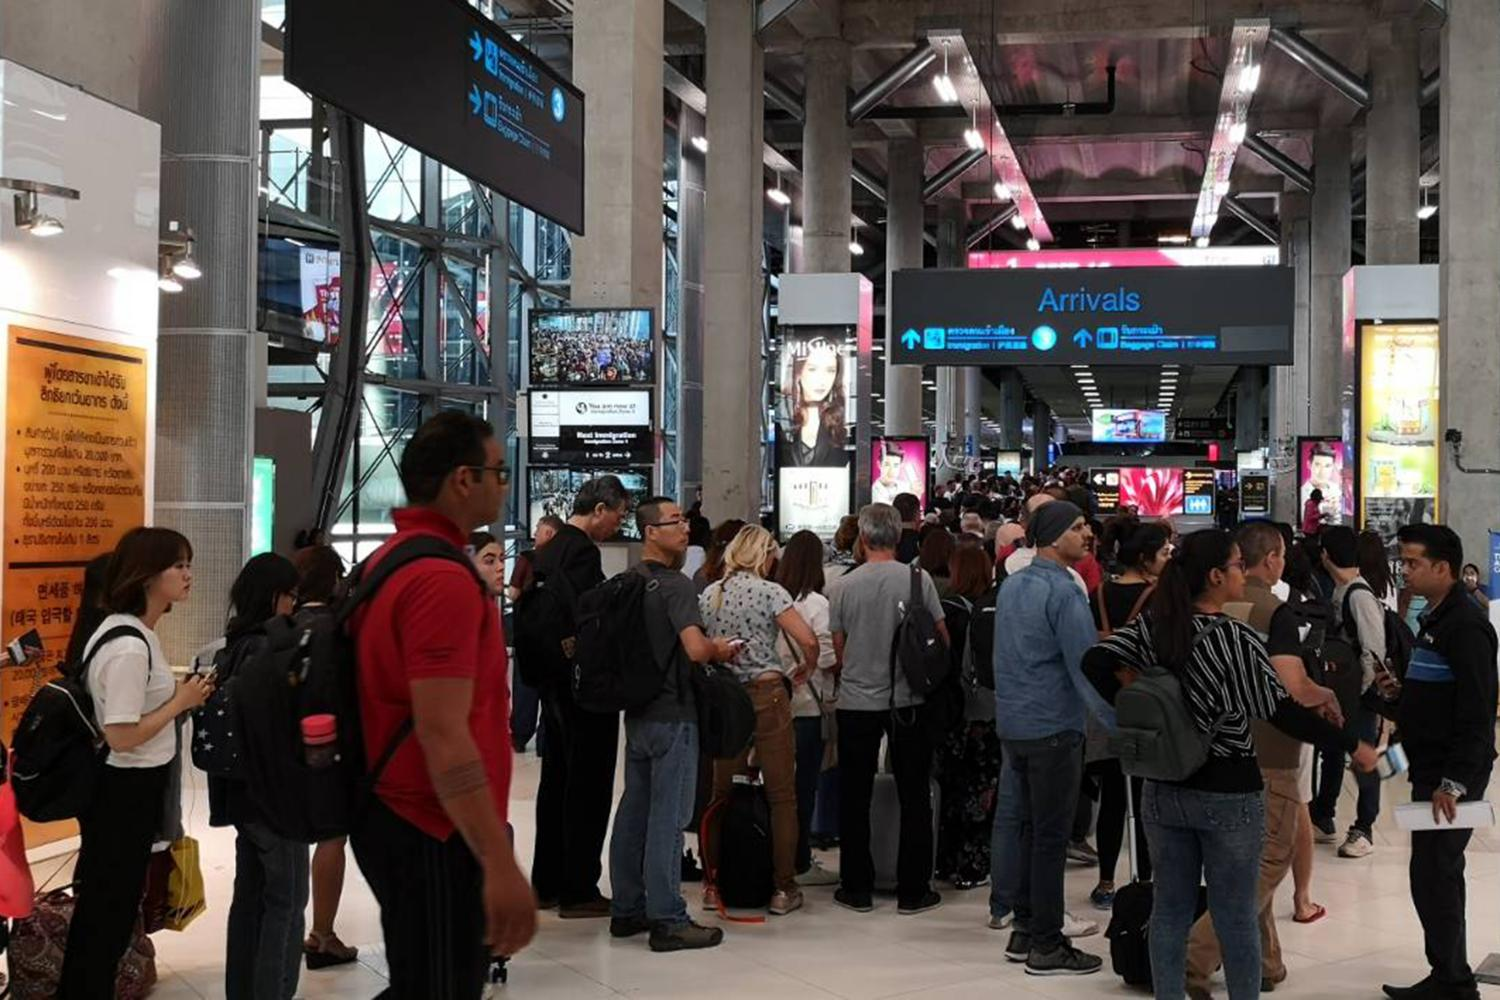 Tourists queue up in lengthy lines for immigration checks at Suvarnabhumi airport. (Bangkok Post photo)